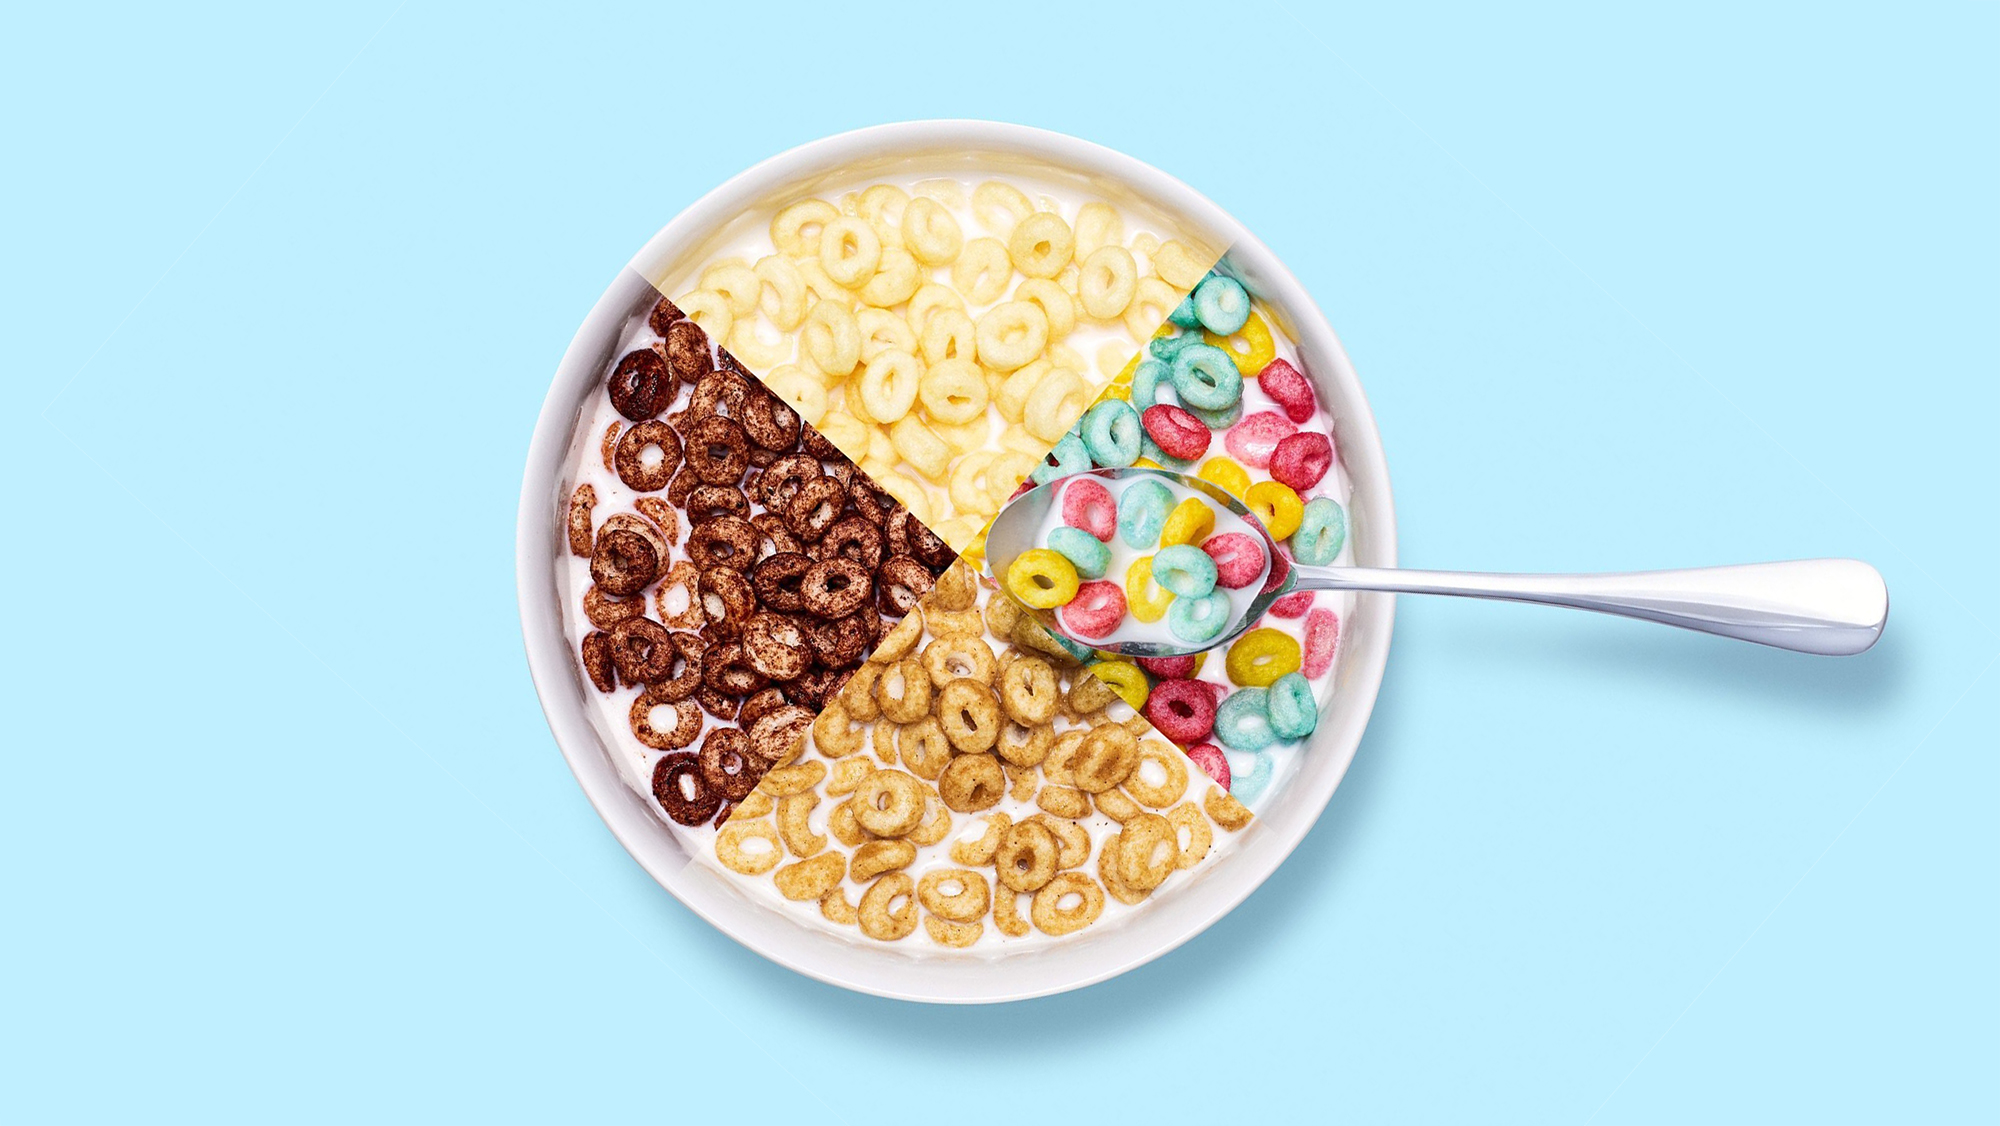 snack delivery boxes: Magic Spoon cereal